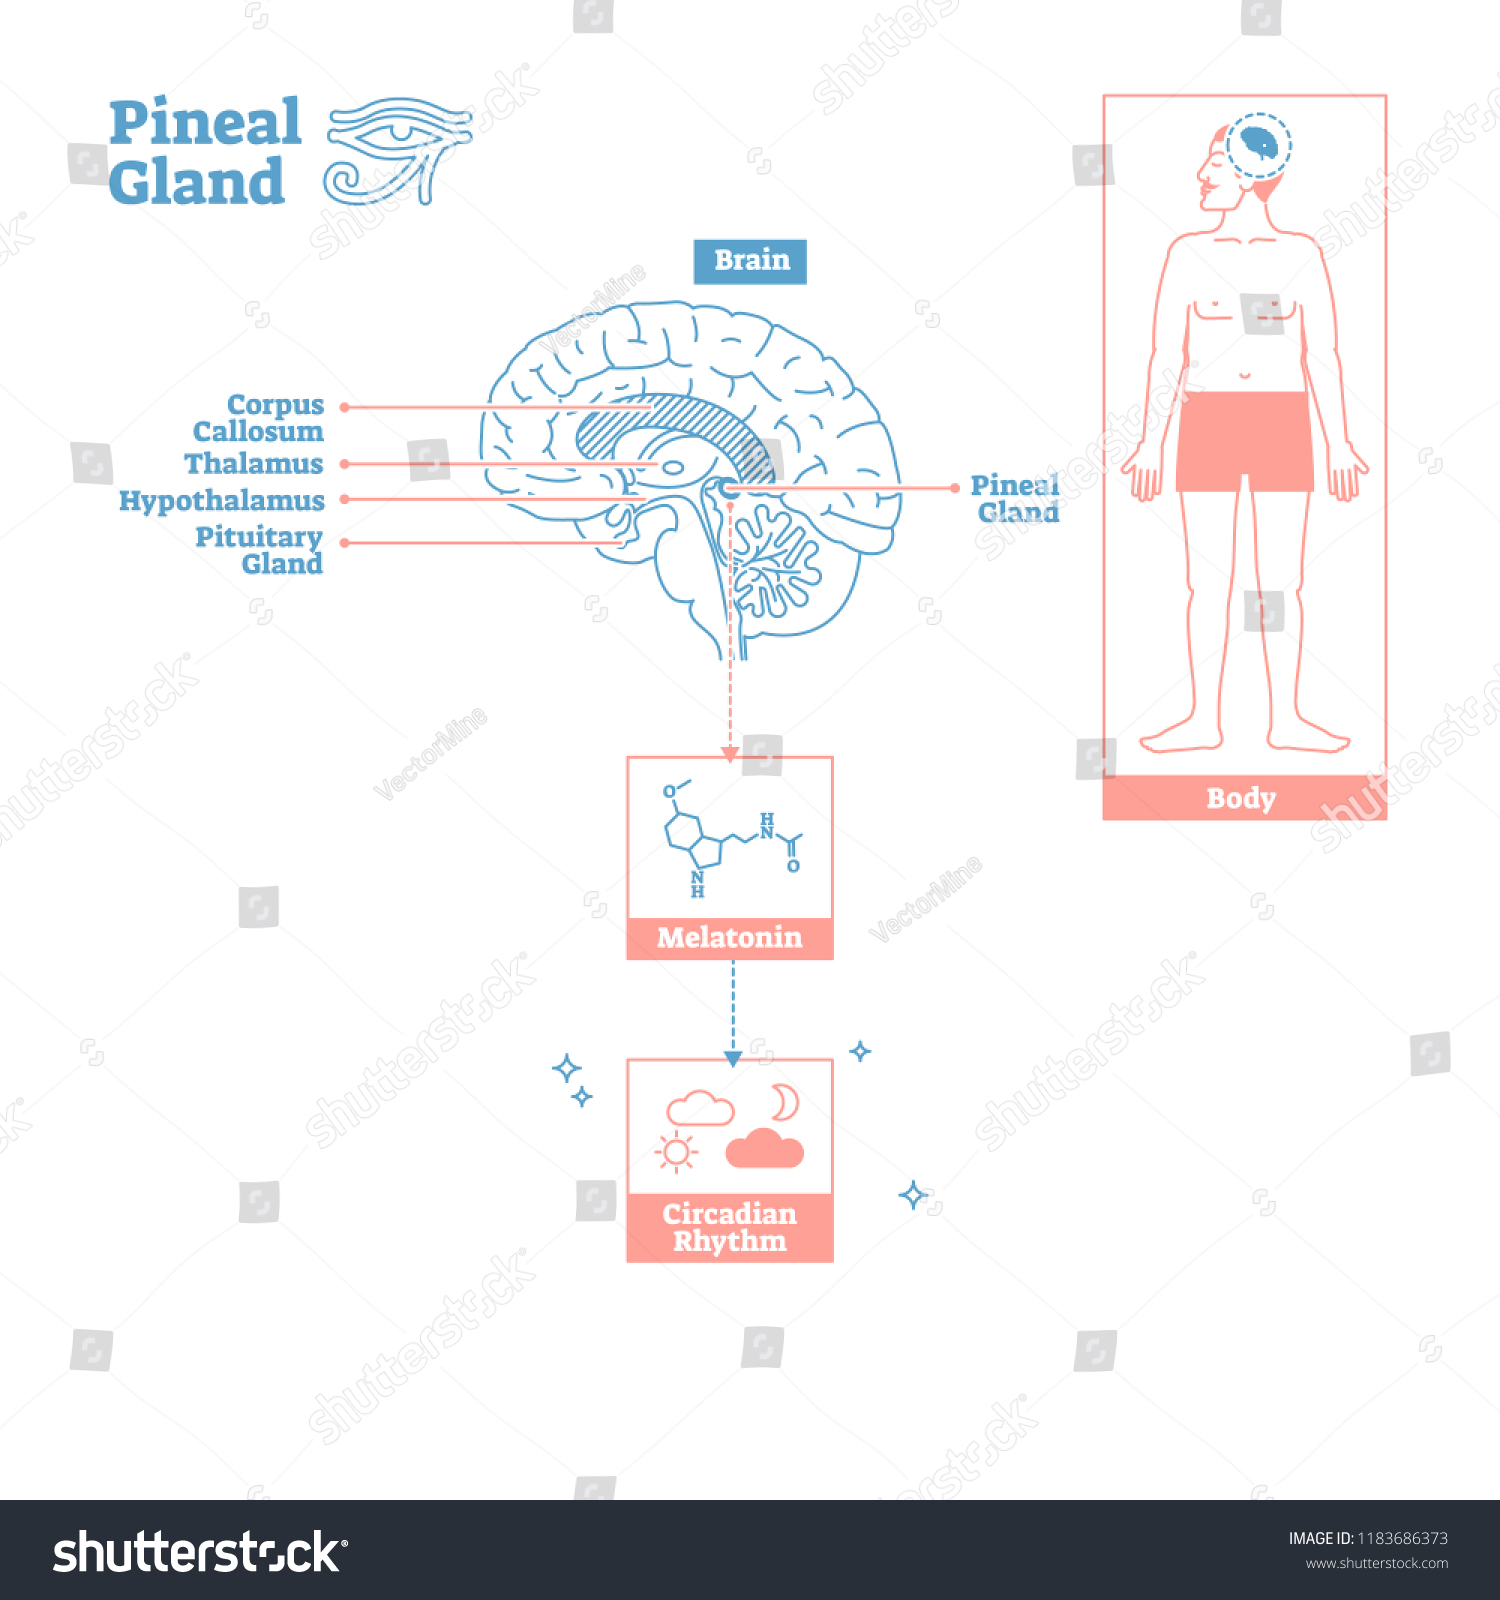 Pineal Gland Endocrine System Medical Science Vector Stock Vector